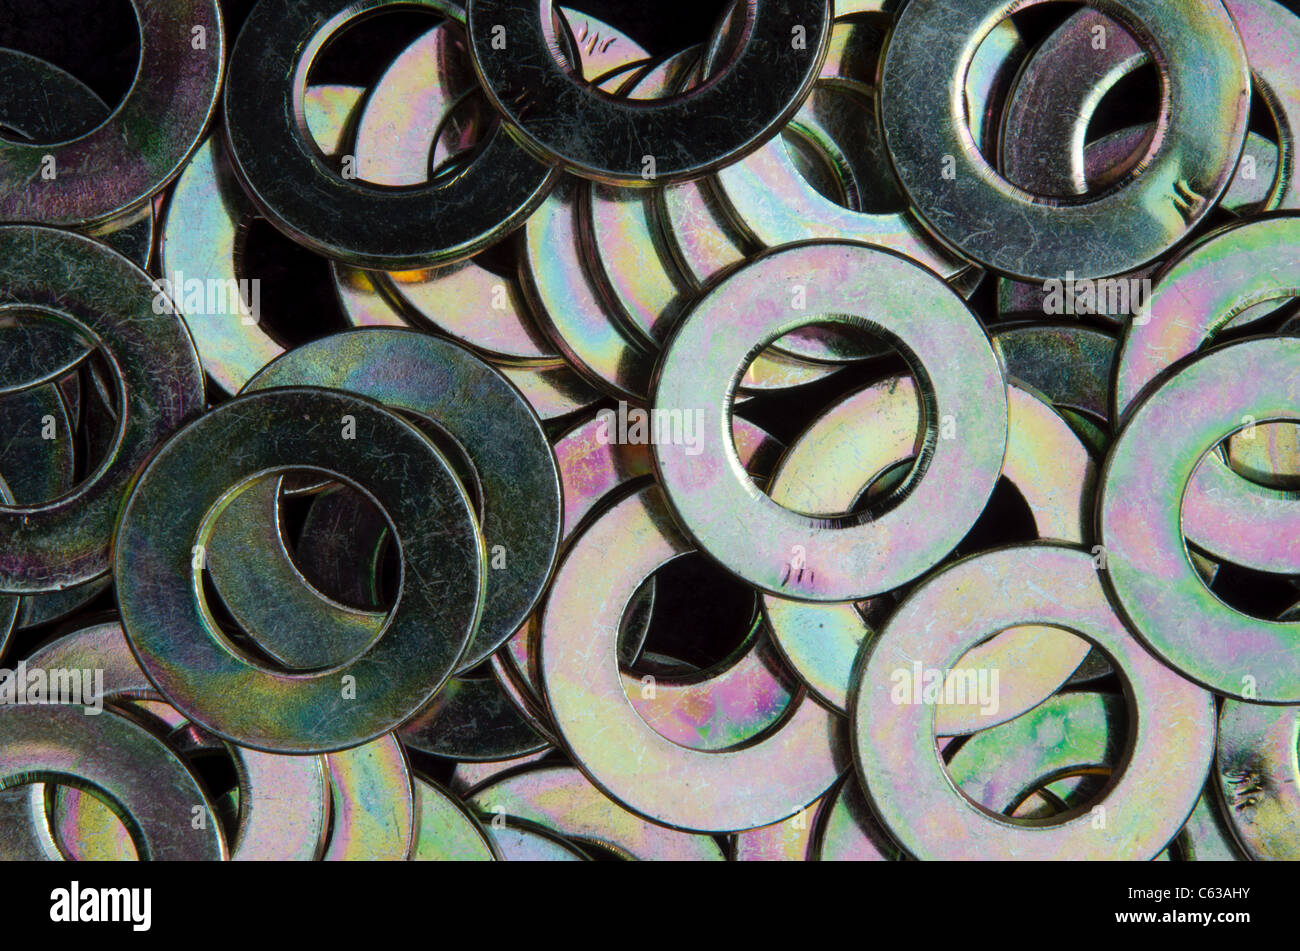 Bunch of washers - Stock Image